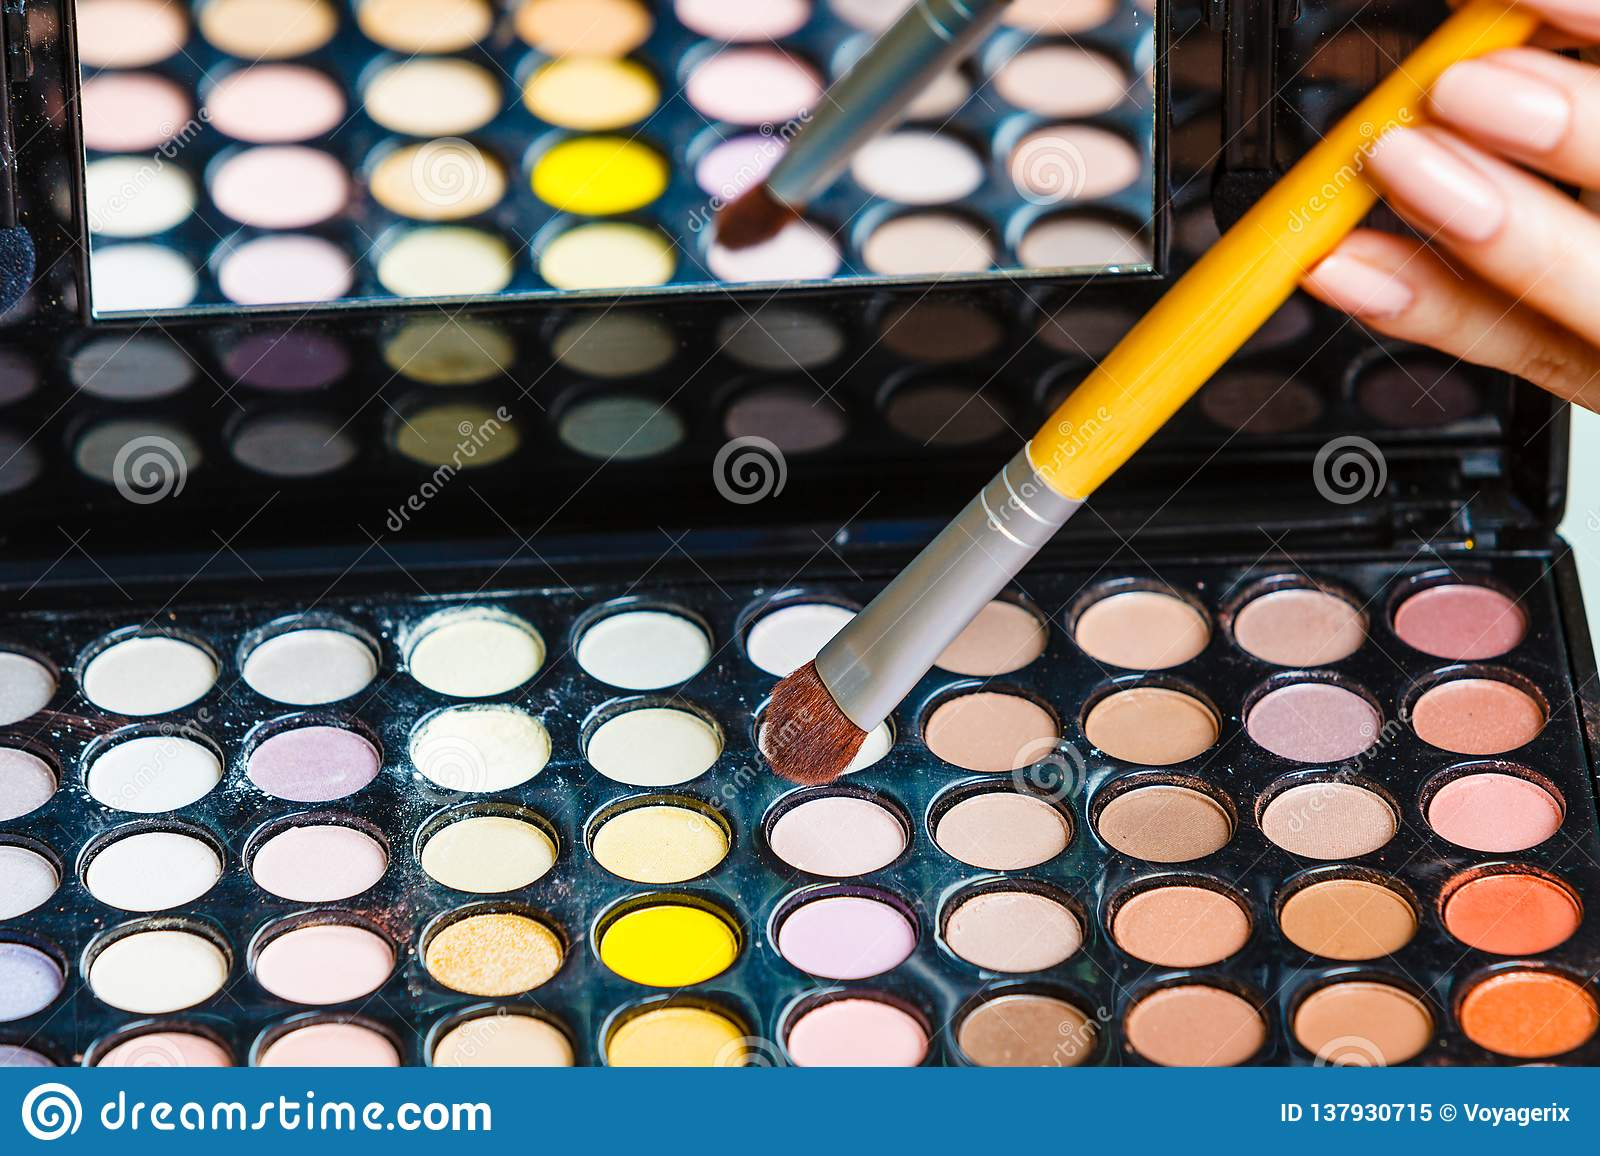 Woman holds makeup eye shadows palette and brush